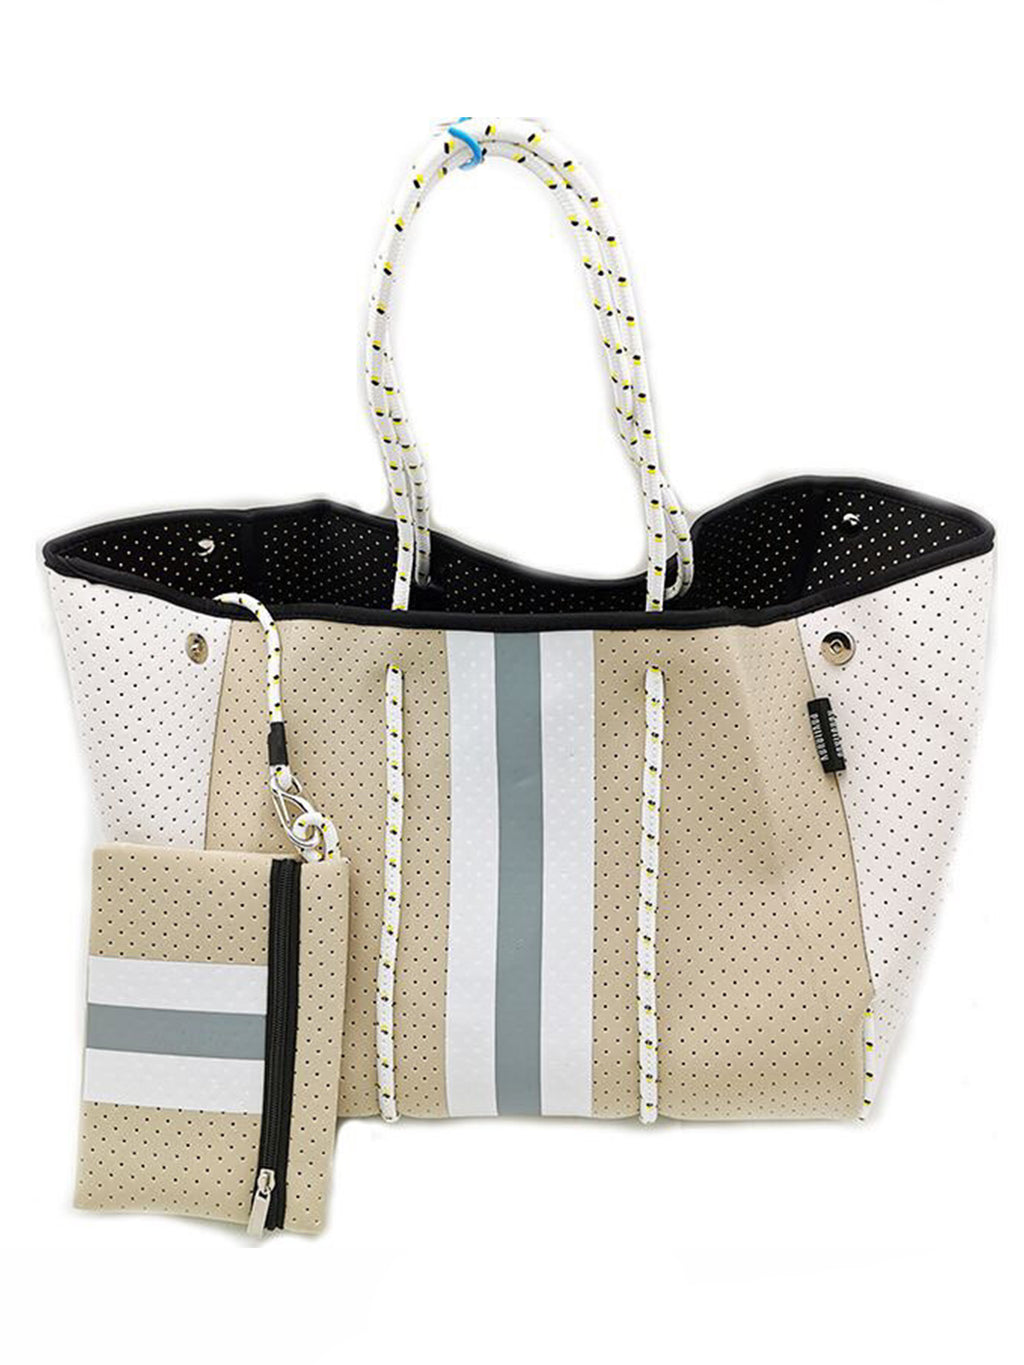 Neoprene Tote Bag Tan Grey Stripe